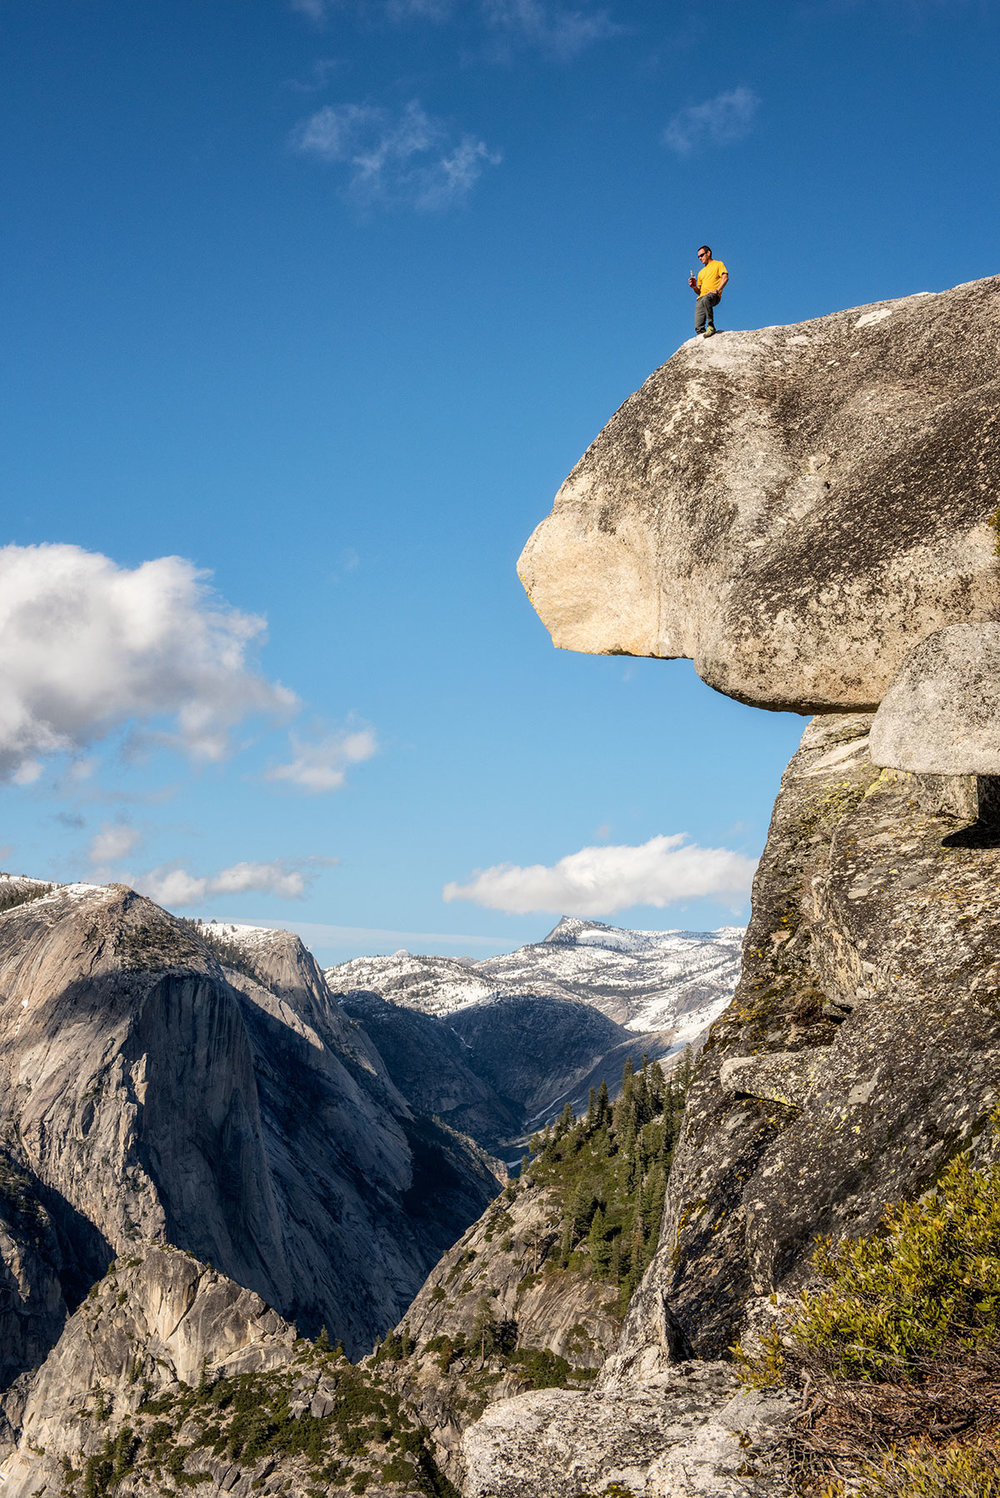 austin-trigg-whiskey-yosemite-product-TINCUP-Porcelain-Wall-Standing-tenya-canyon-snow.jpg